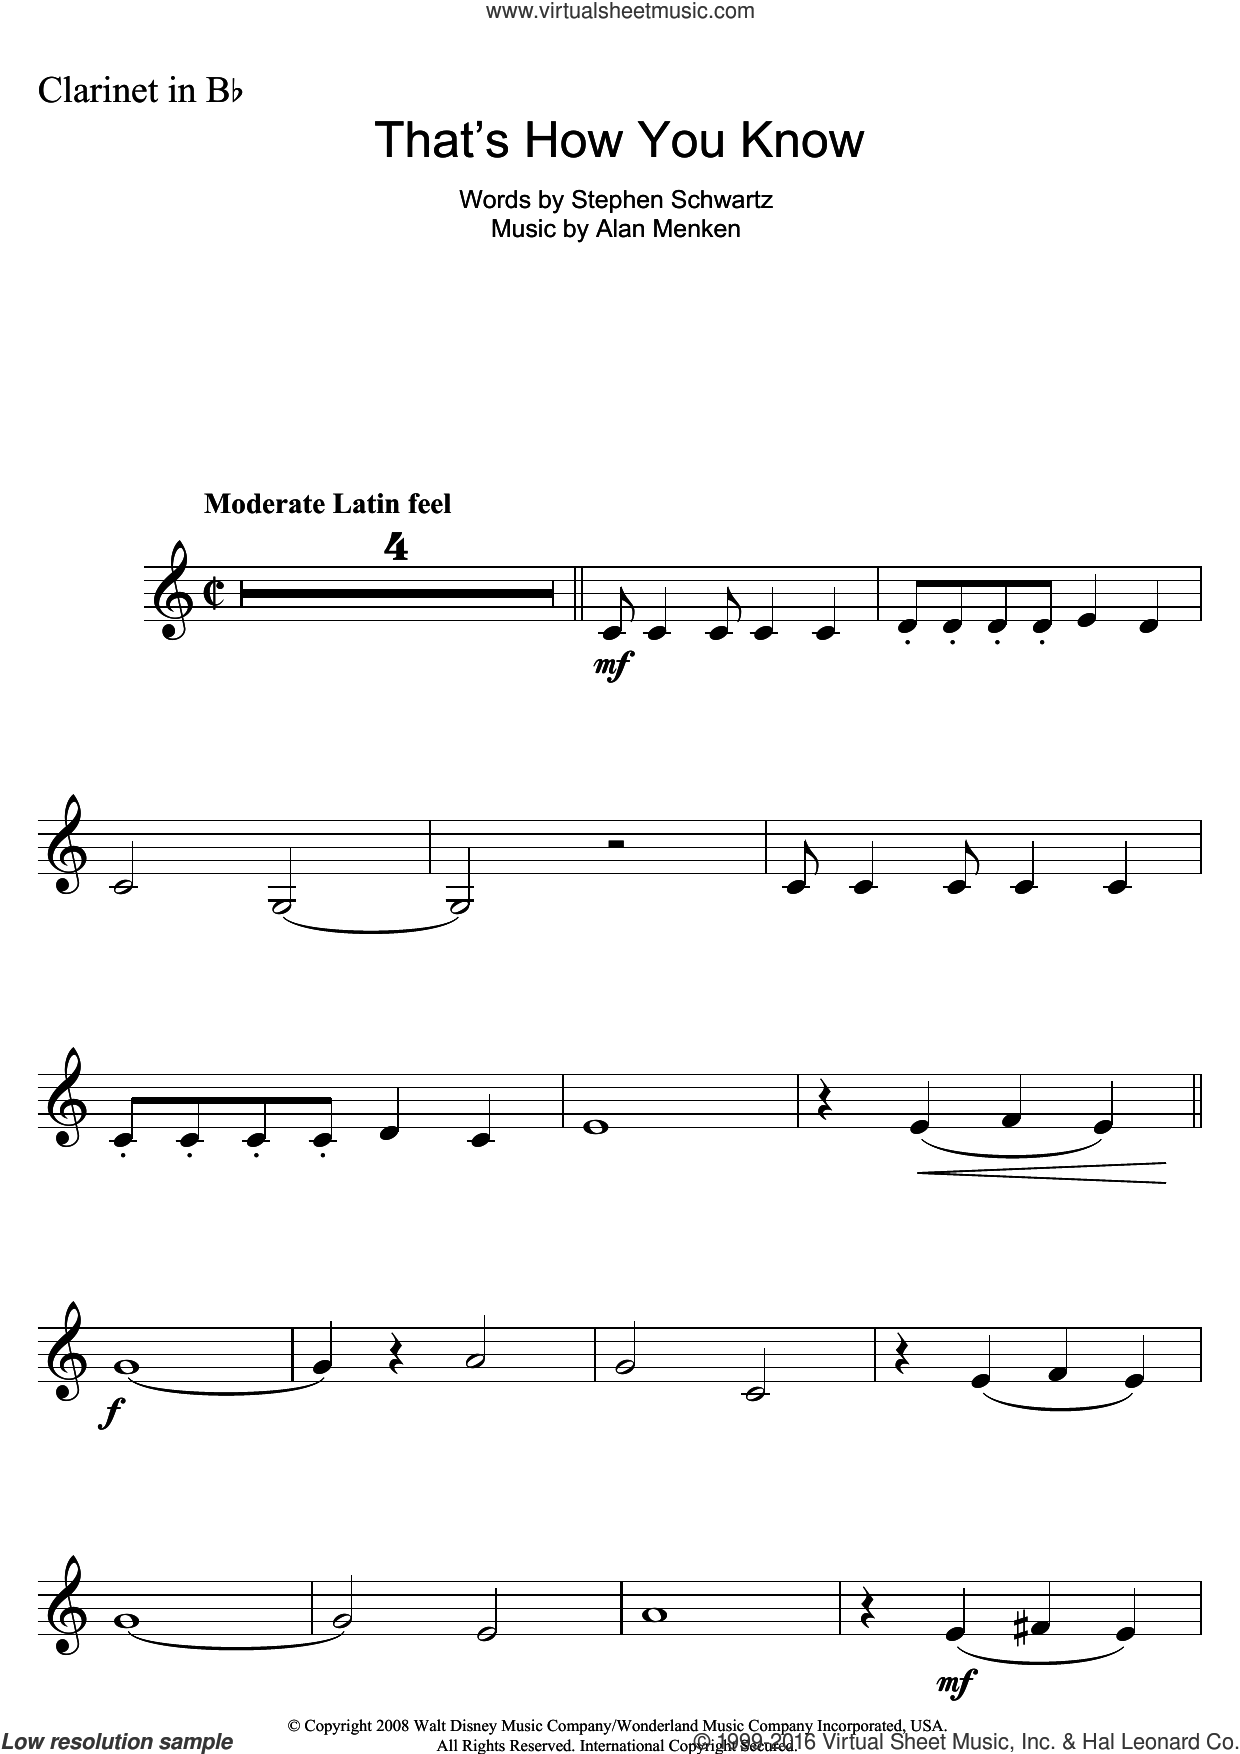 That's How You Know (from Enchanted) sheet music for clarinet solo by Alan Menken and Stephen Schwartz, intermediate skill level